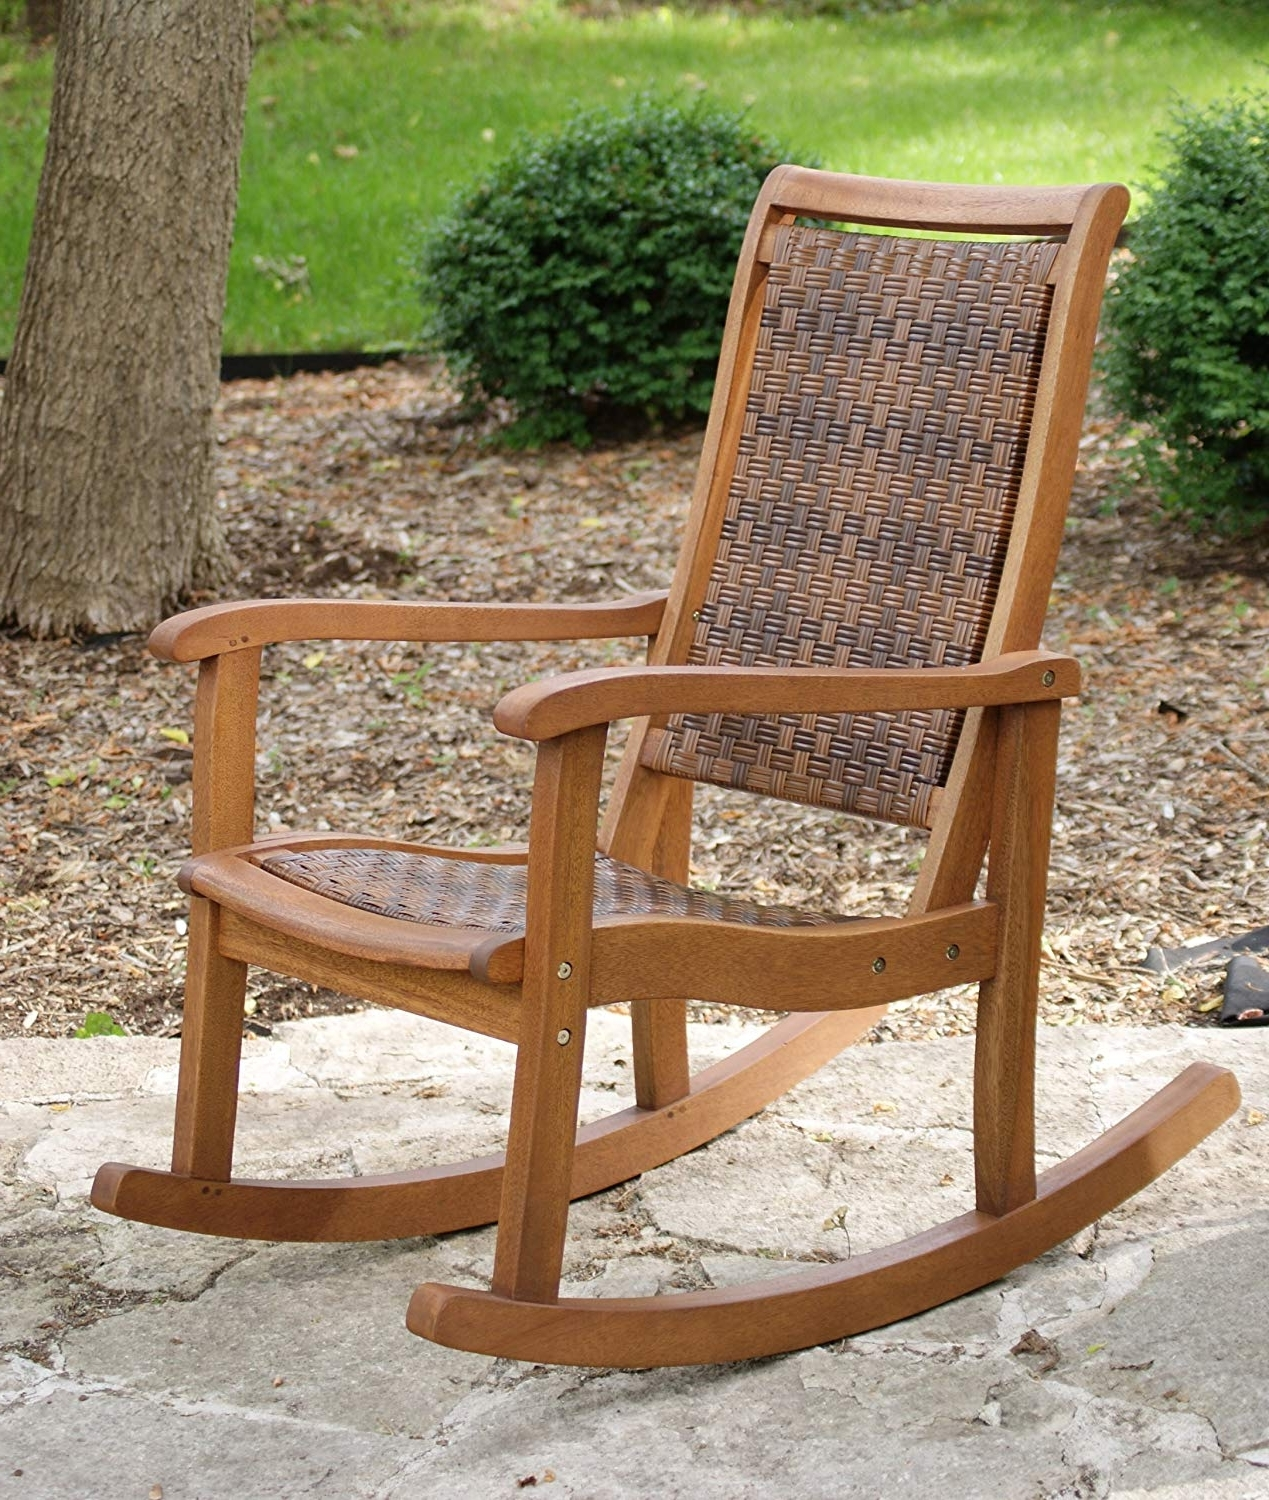 Trendy Outdoor Rocking Chairs Throughout Amazon : Outdoor Interiors 21095Rc All Weather Wicker Mocha And (View 8 of 15)